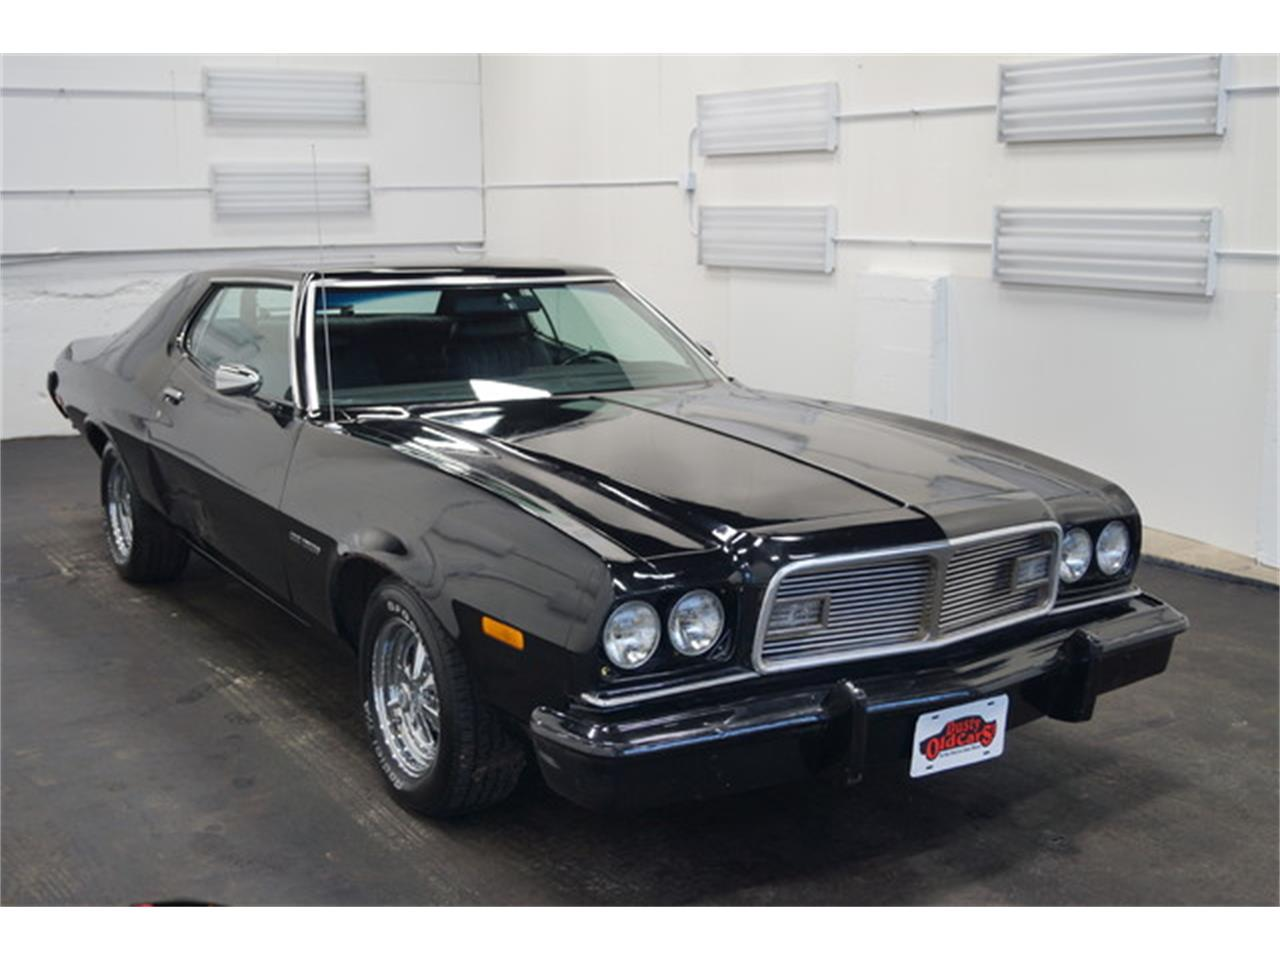 Image Result For Classic Cars Muscle Cars For Sale On Fossilcars